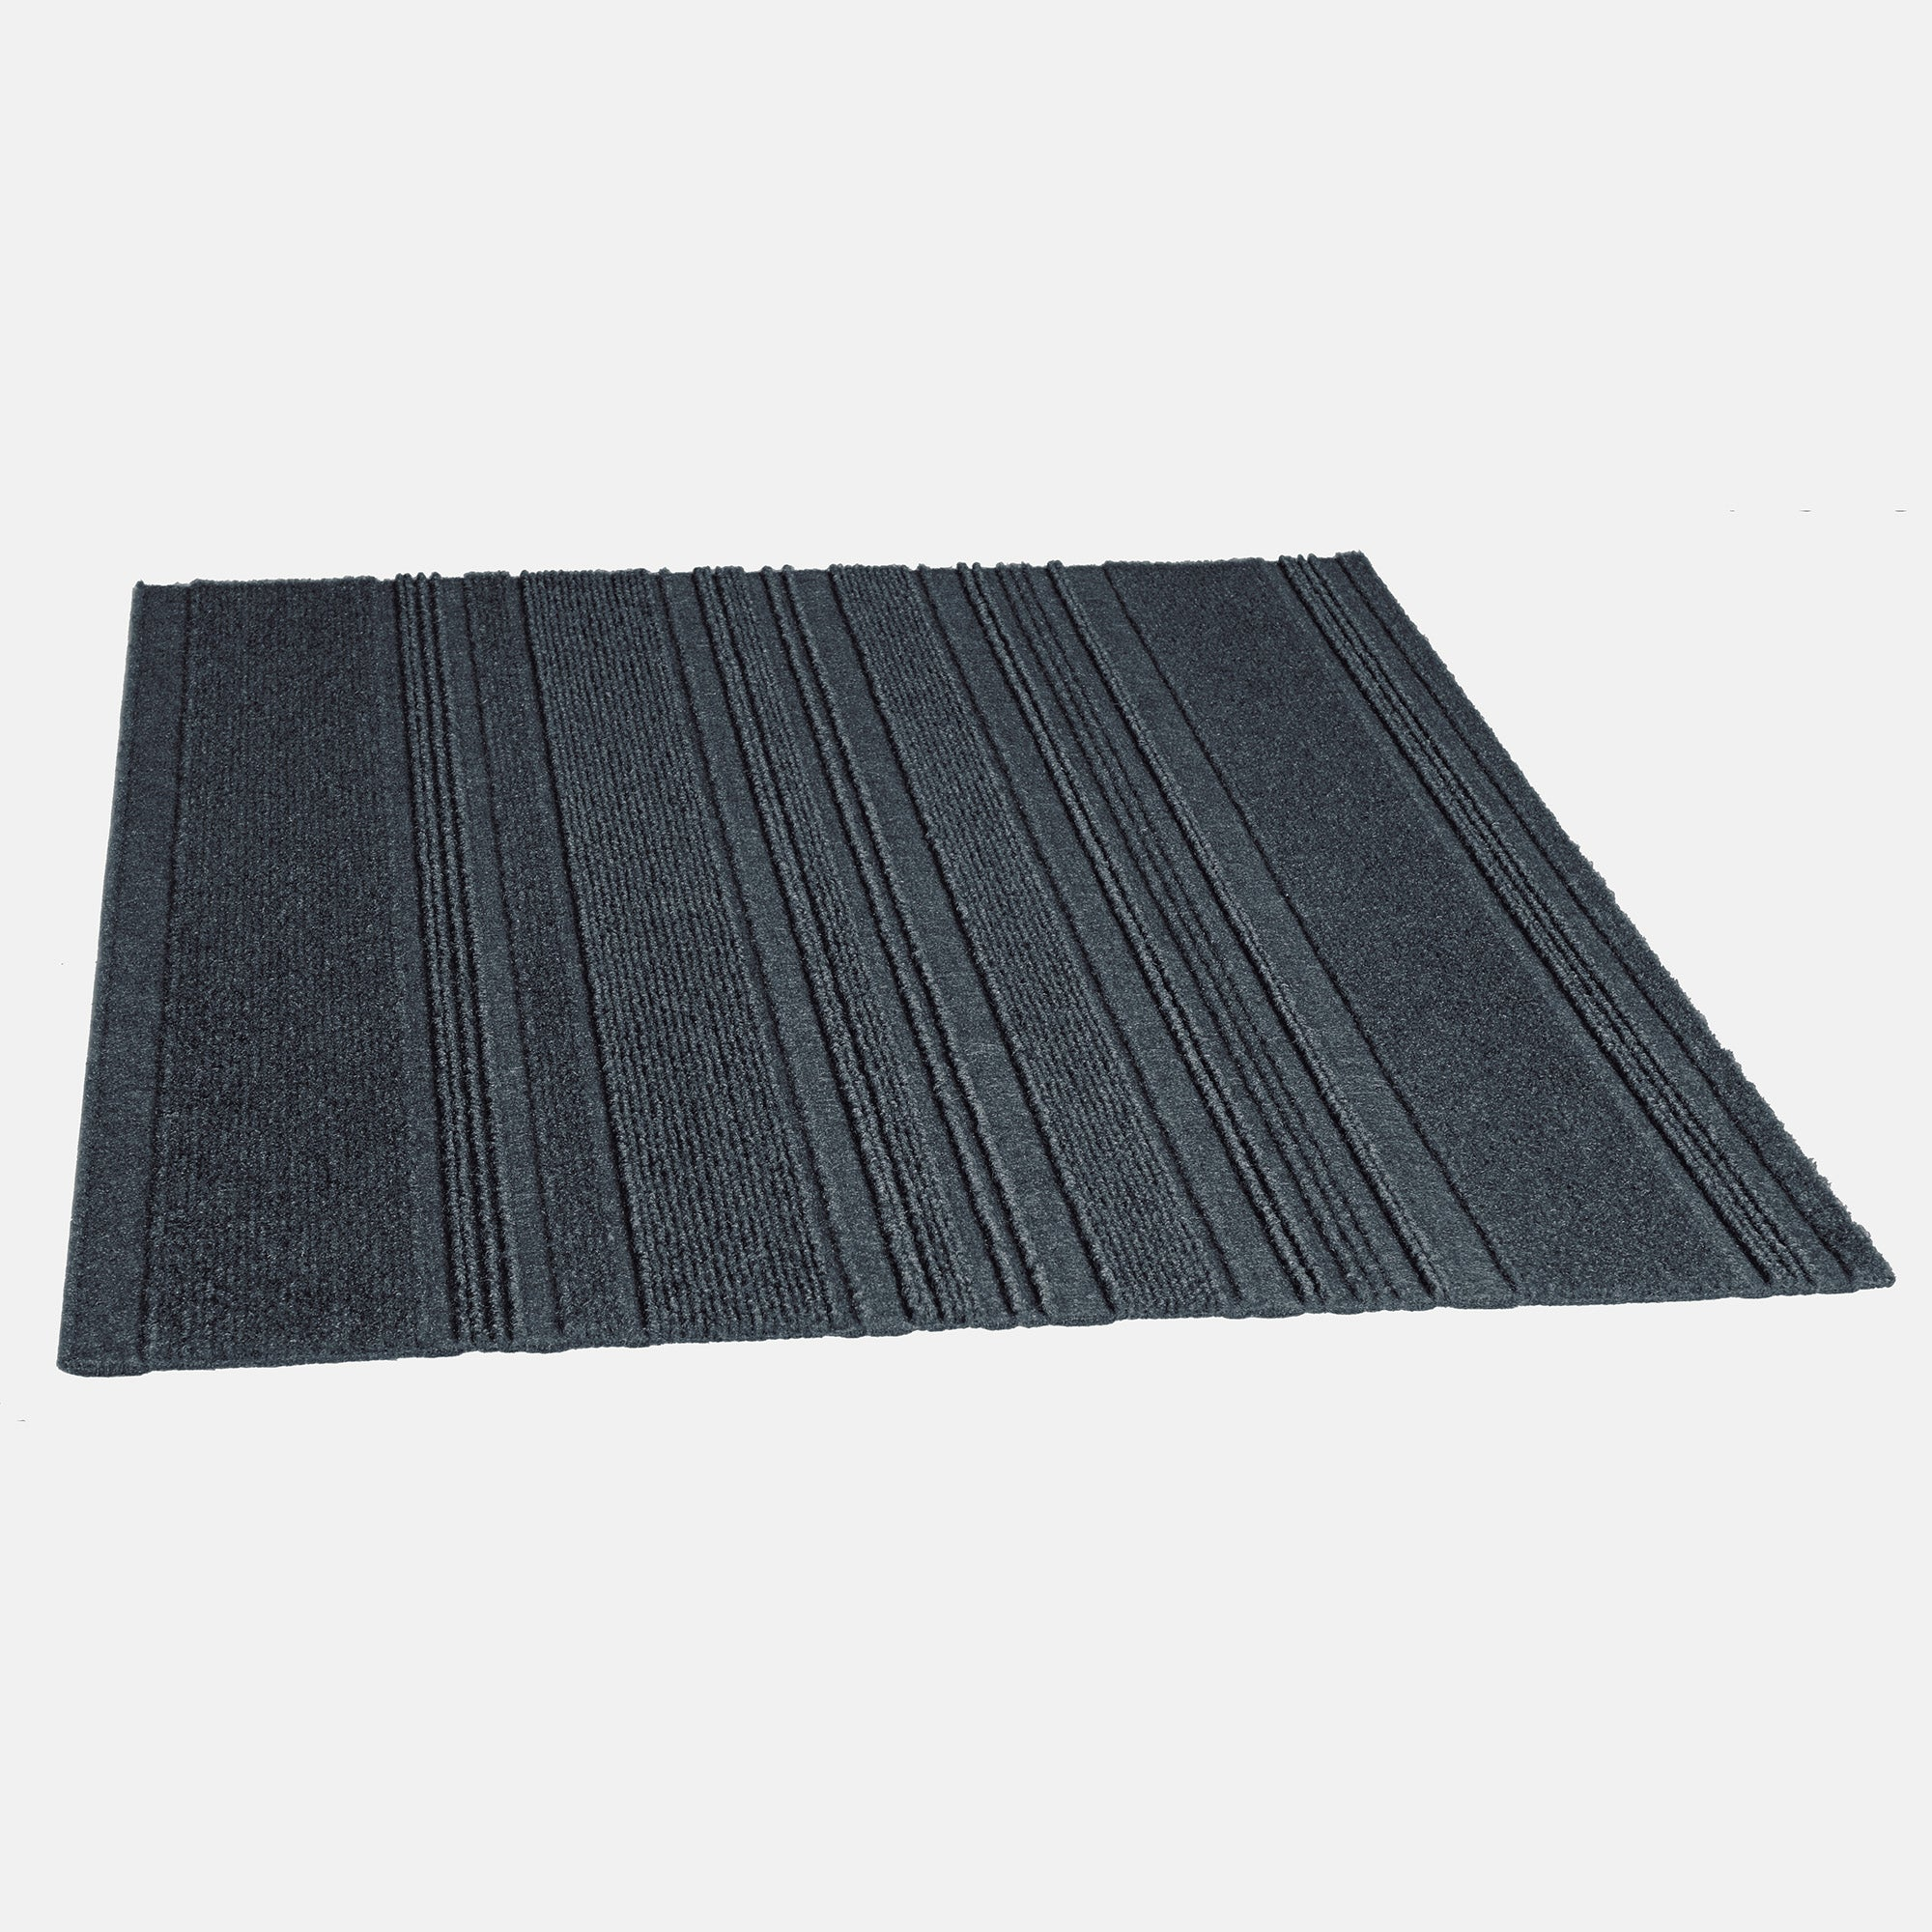 Issac 24'' X 24'' Premium Peel And Stick Carpet Tiles (Denim)